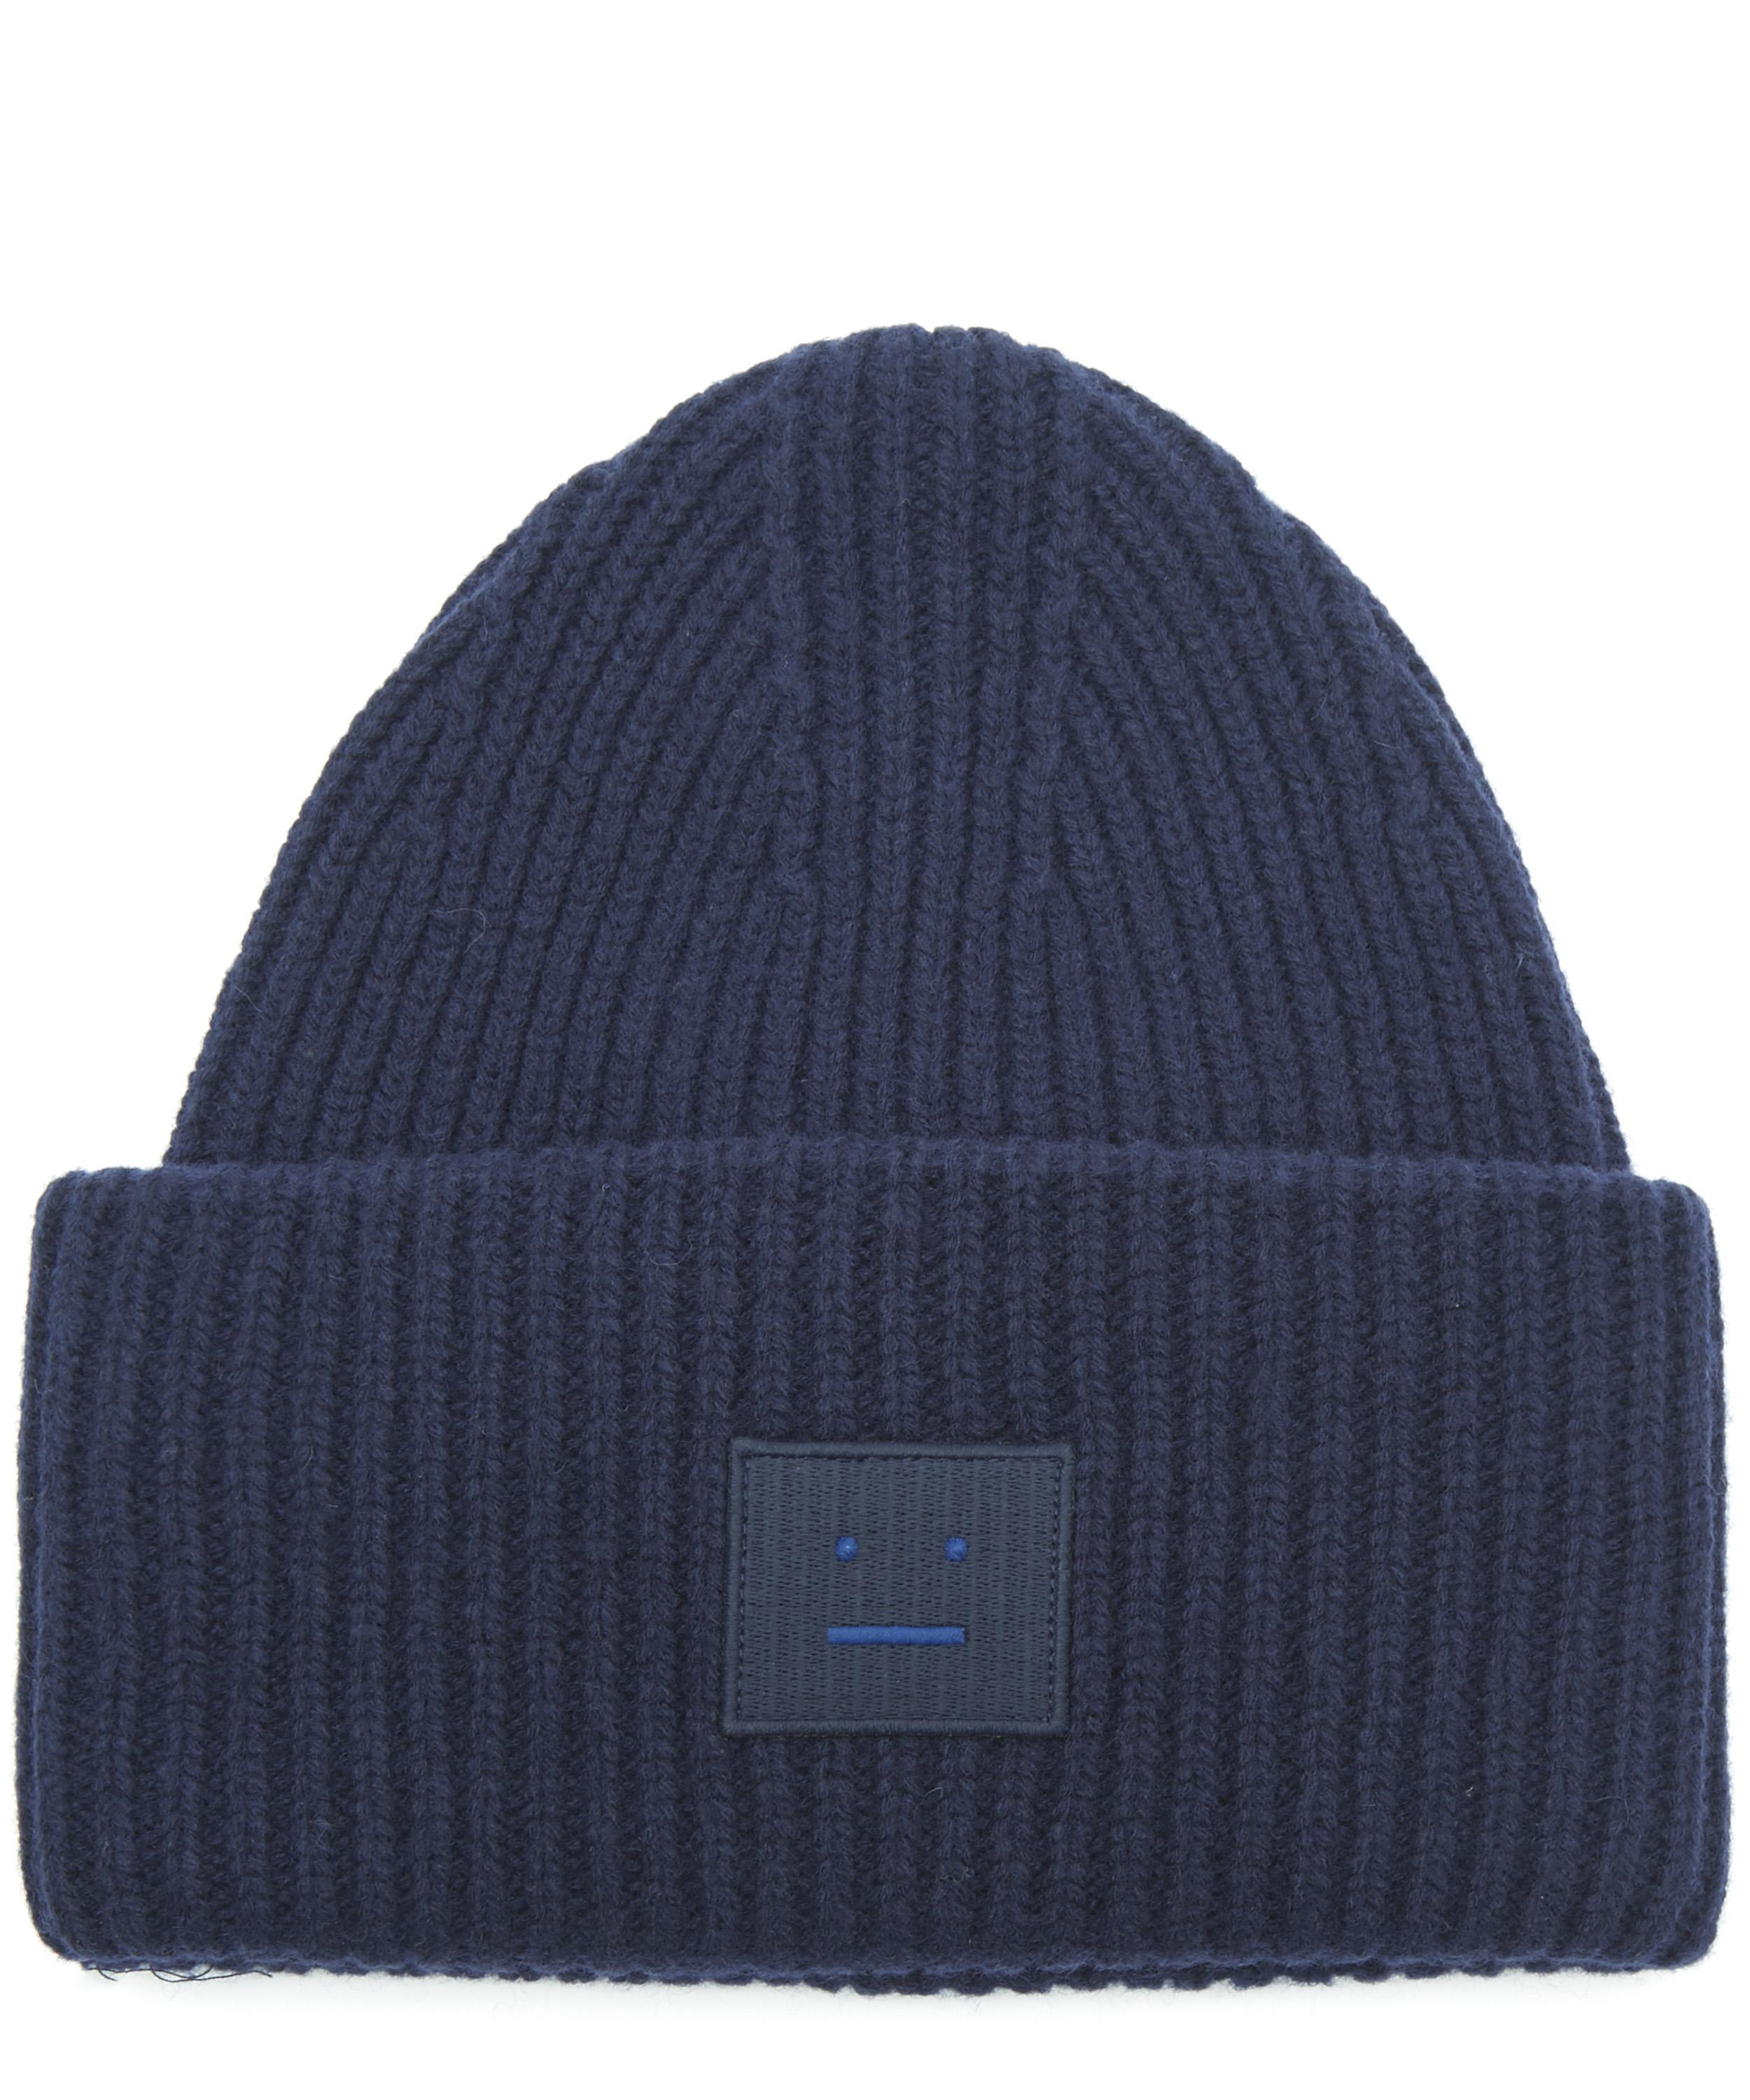 42d9797f458a2 Acne - Blue Pansy Face Wool Beanie Hat for Men - Lyst. View fullscreen